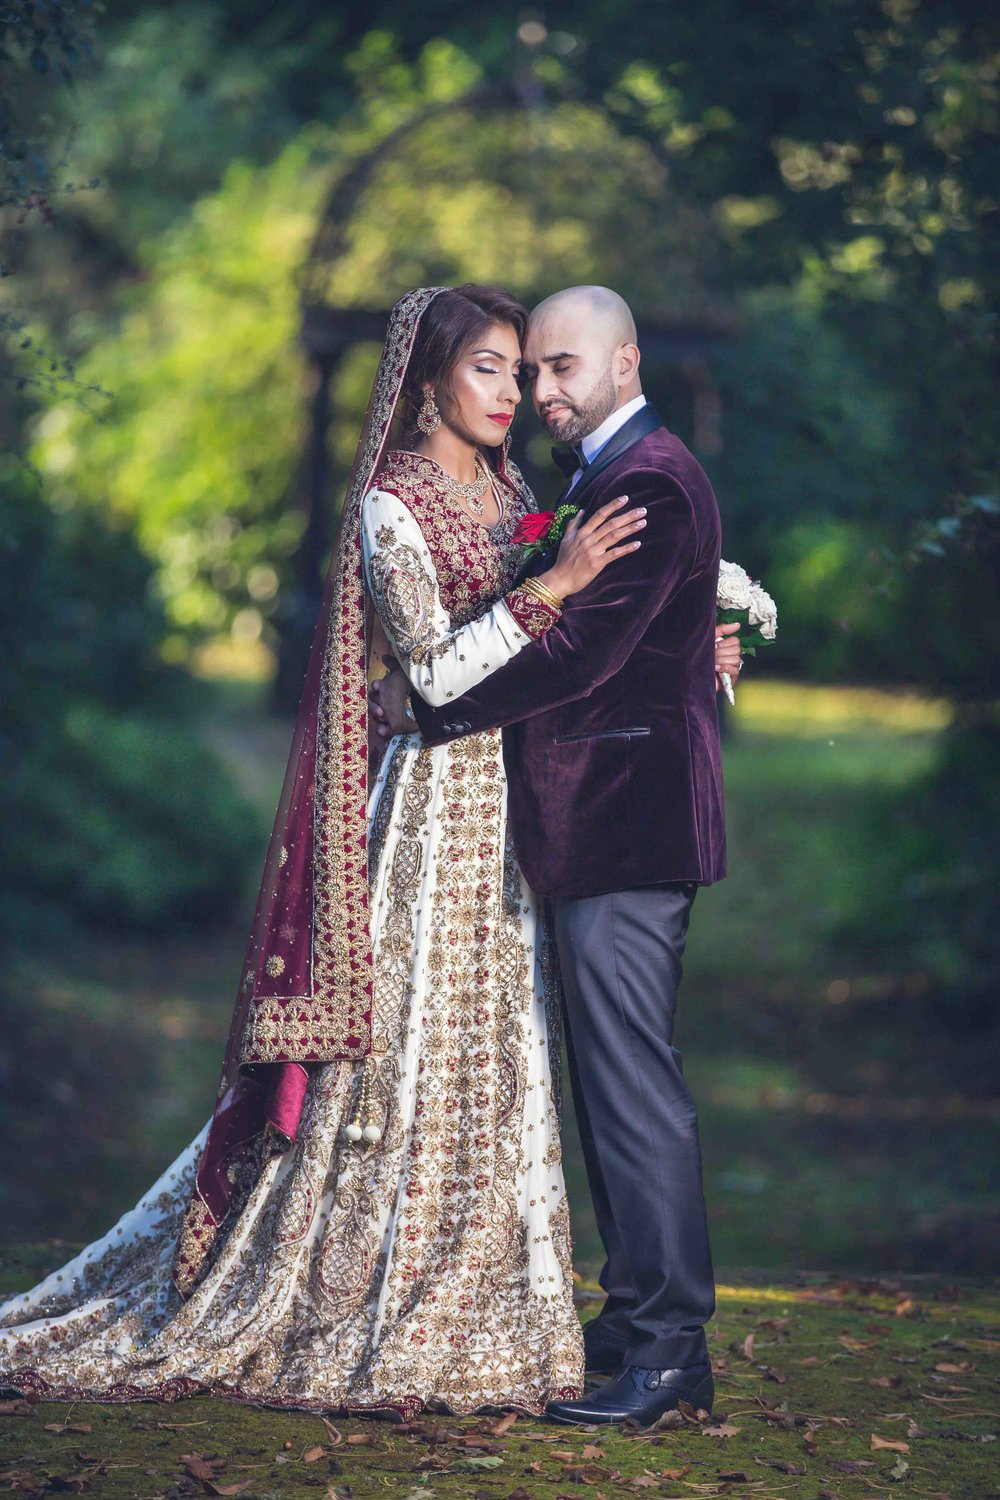 Asian Wedding Photographer Opu Sultan Photography Lyme Park Scotland Edinburgh Glasgow London Manchester Liverpool Birmingham Wedding Photos prewed shoot Azman & Saira Blog-92.jpg